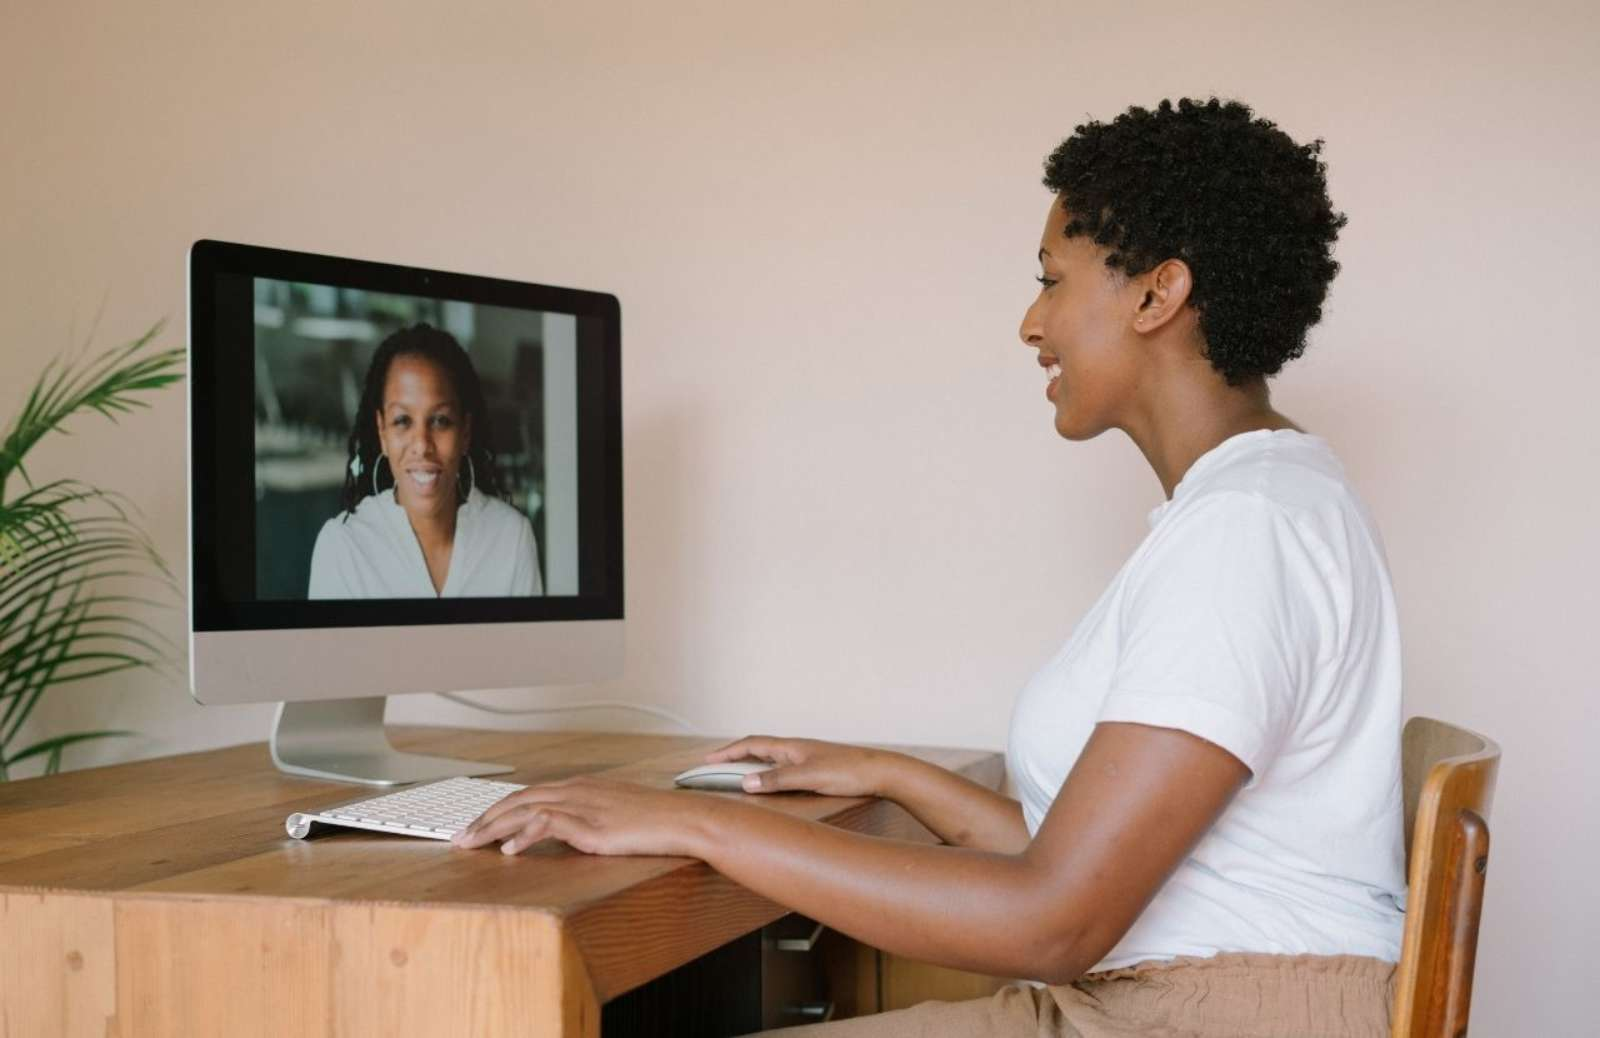 Woman at desk talking to another woman on her computer screen during virtual meeting